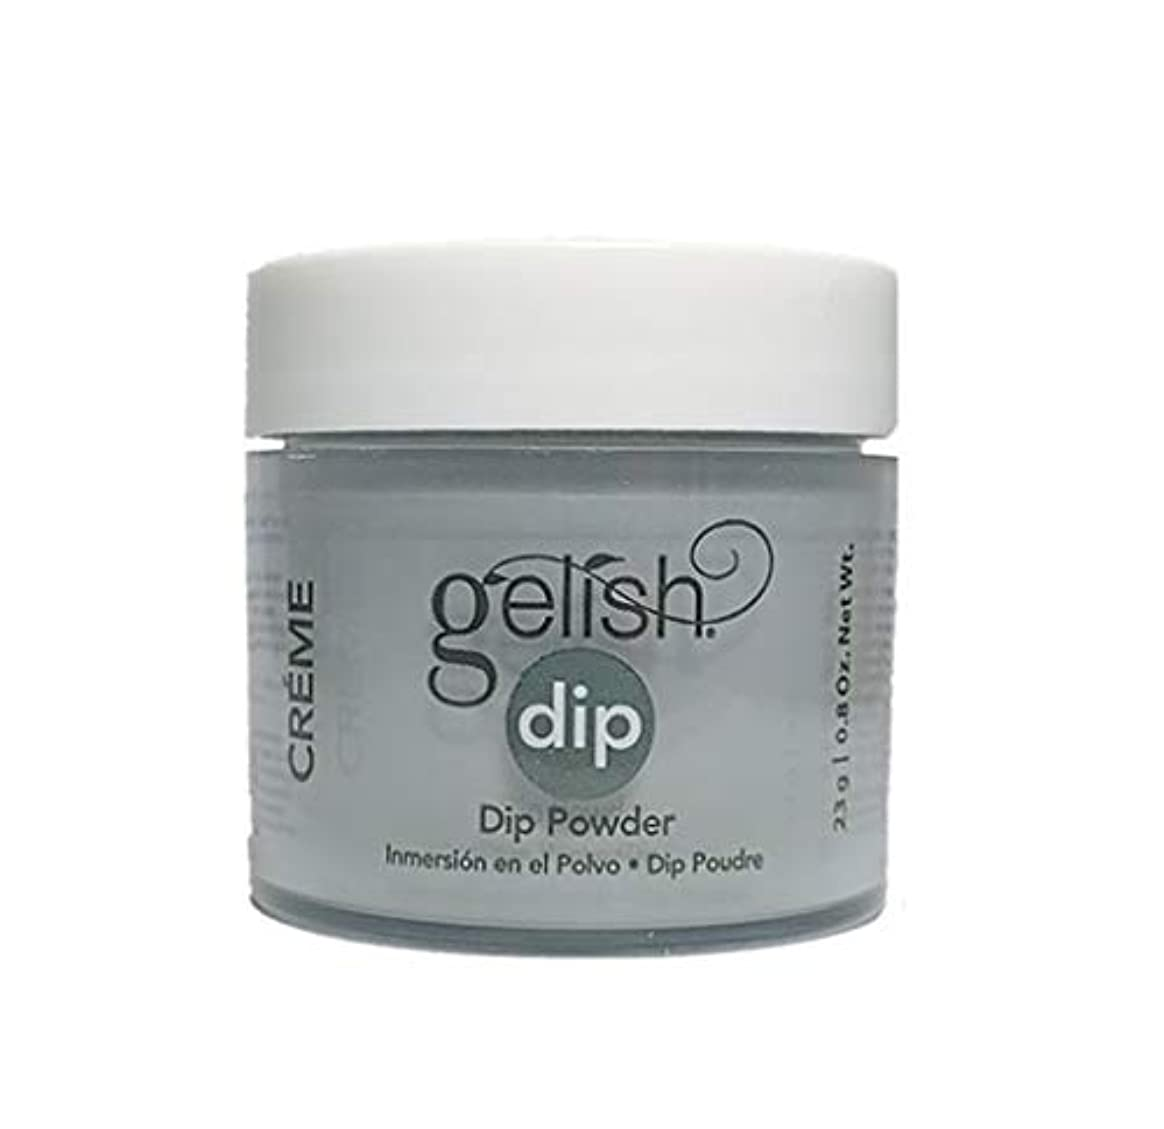 政治暴力的な振幅Harmony Gelish - Dip Powder - Fashion Week Chic - 23g / 0.8oz